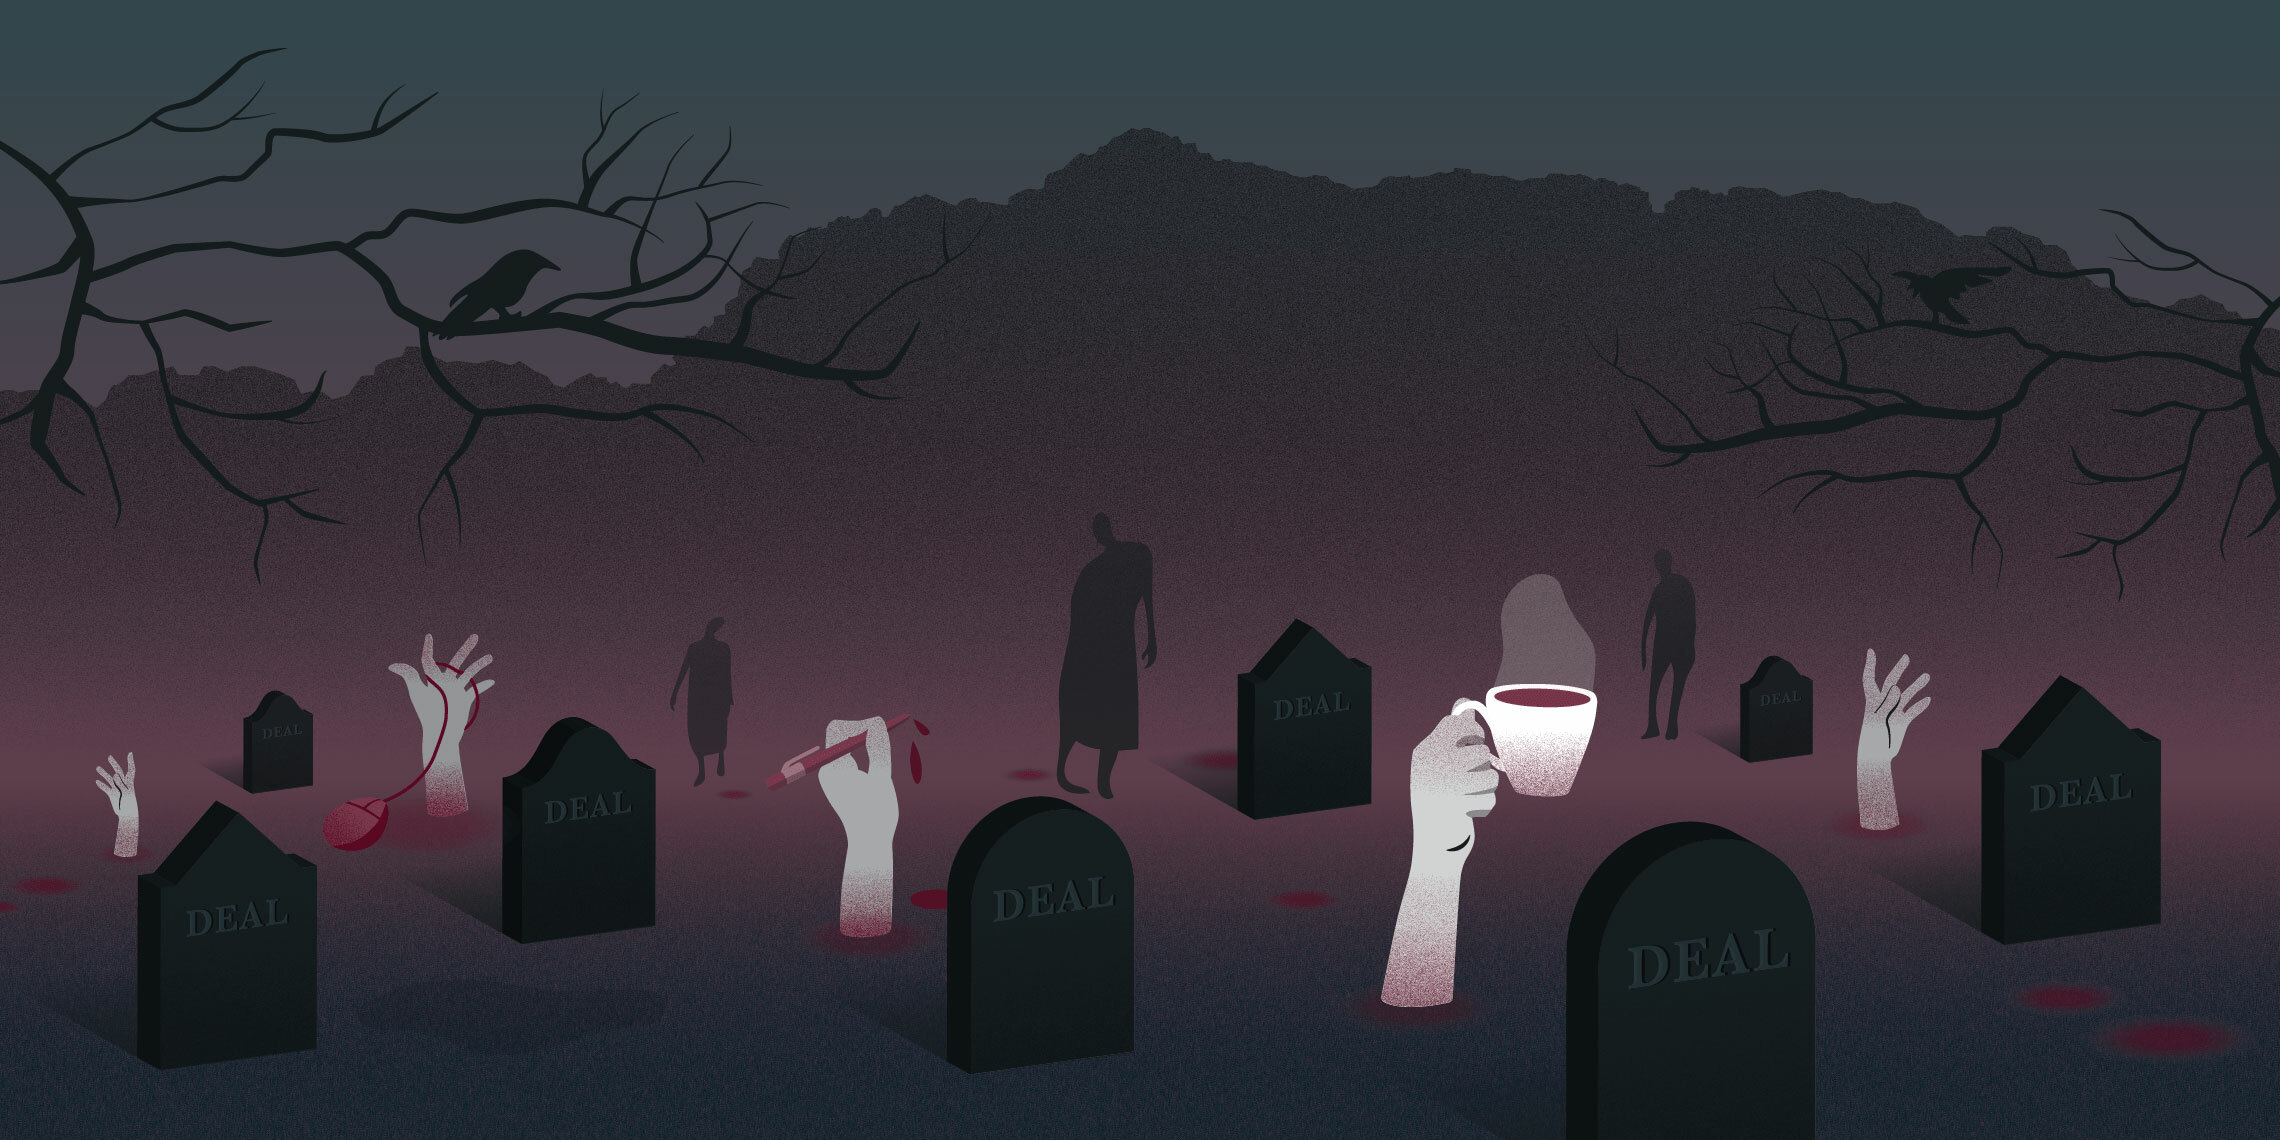 a graveyard of dead deals with bad branding